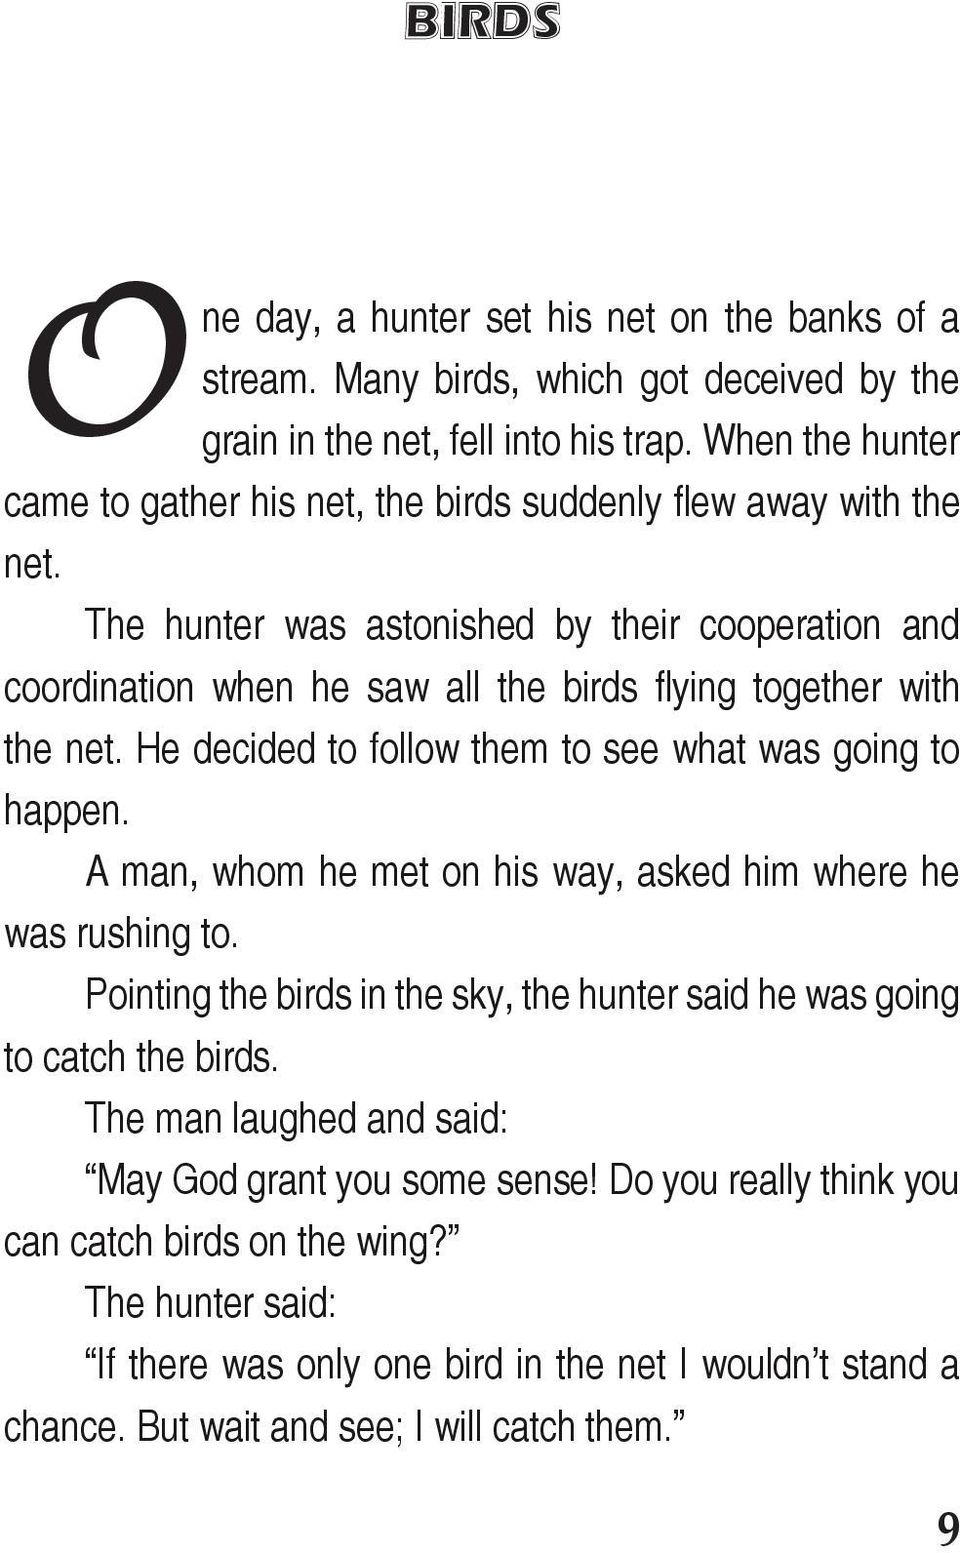 The hunter was astonished by their cooperation and coordination when he saw all the birds flying together with the net. He decided to follow them to see what was going to happen.